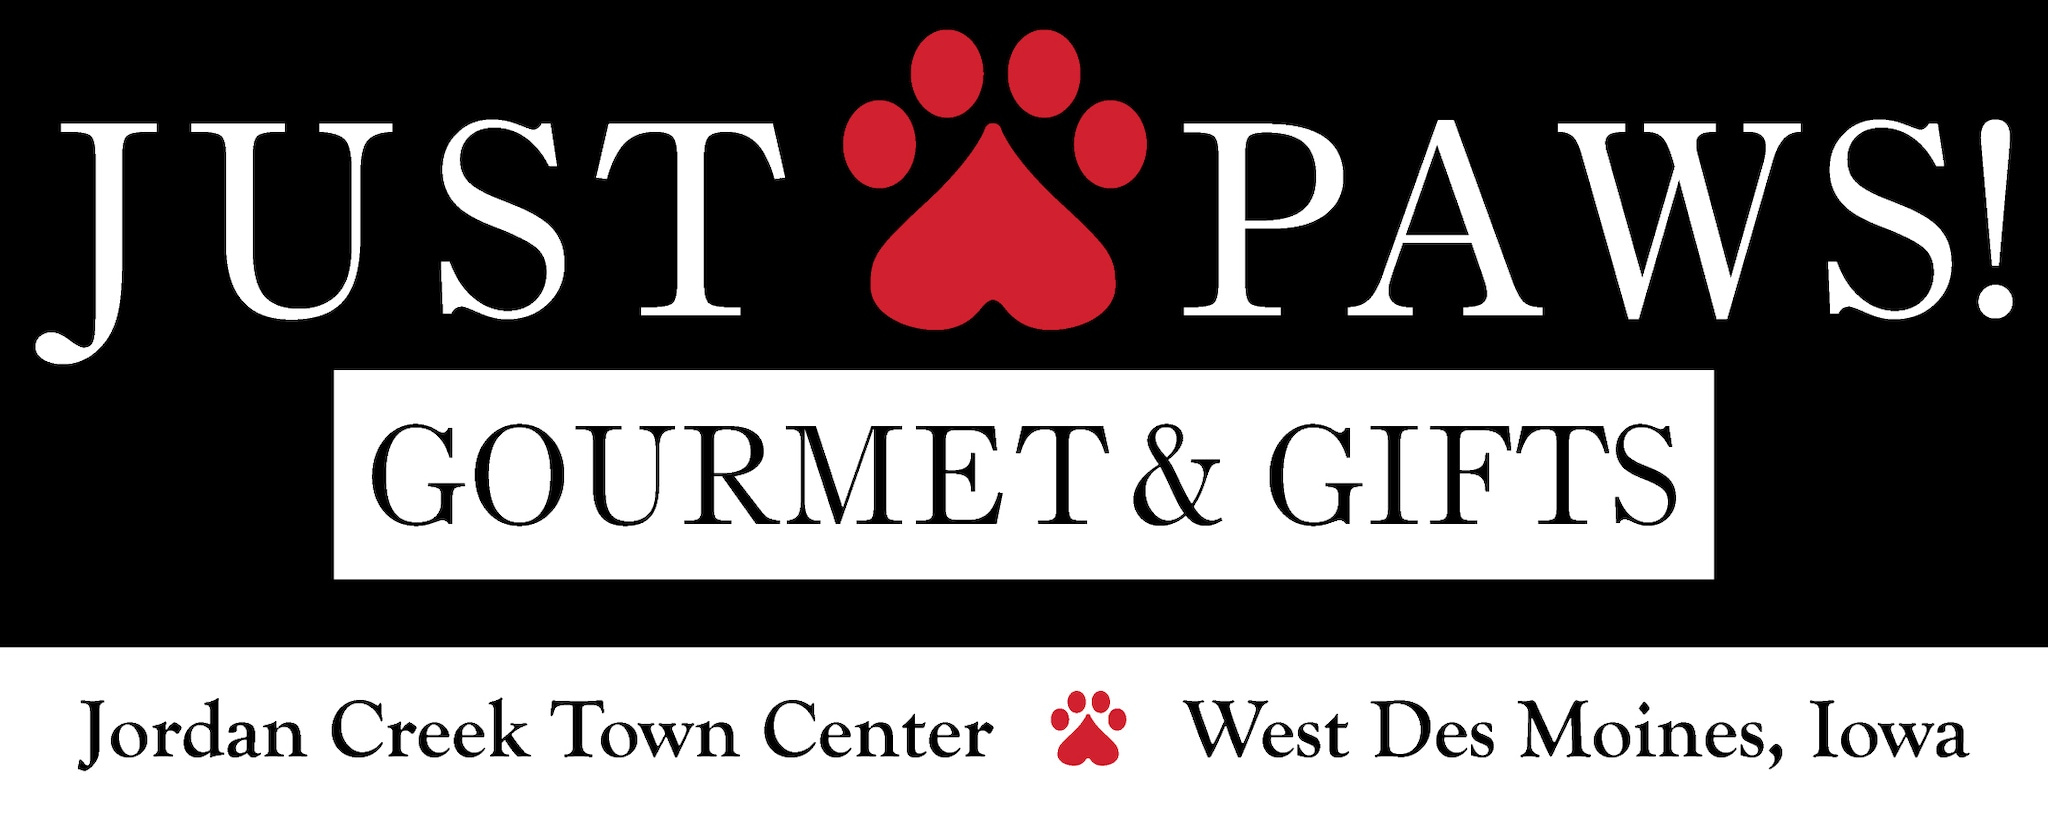 just-paws-logo_location2